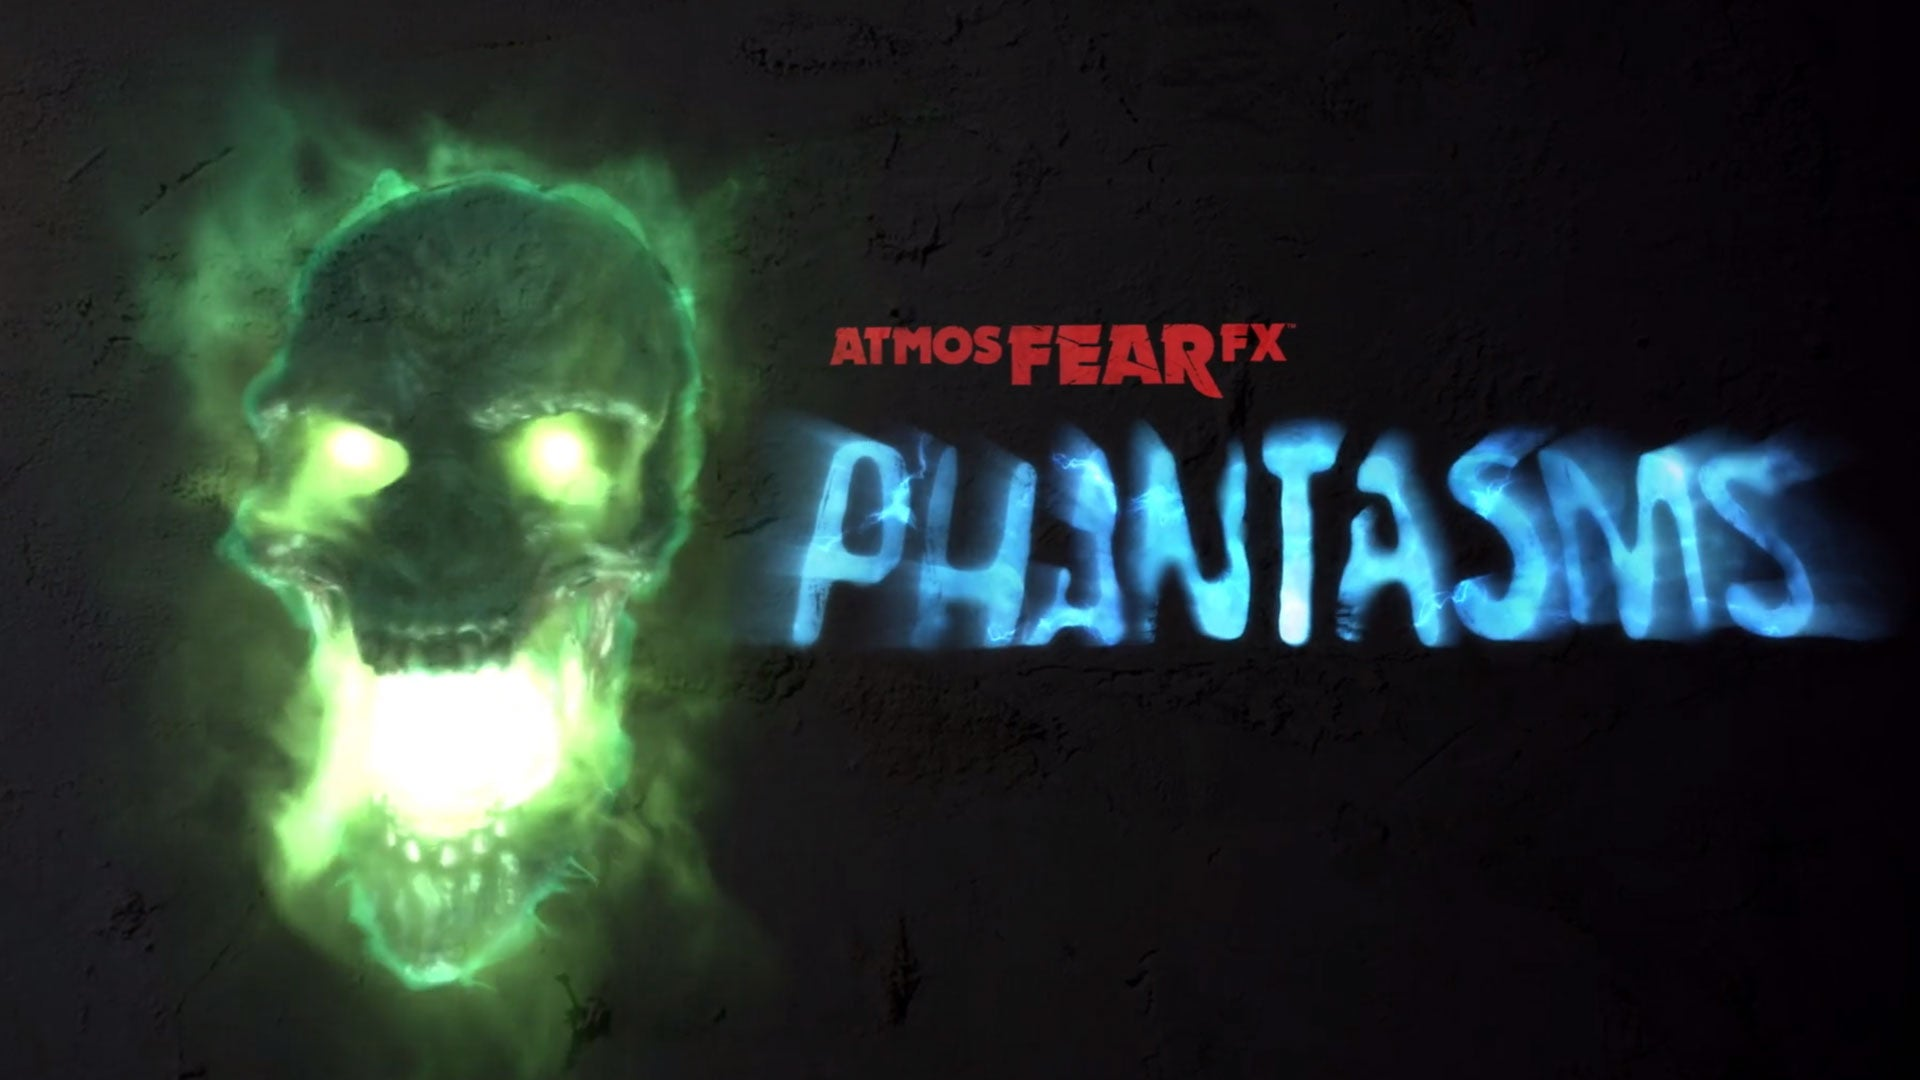 AtmosFX Phantasms